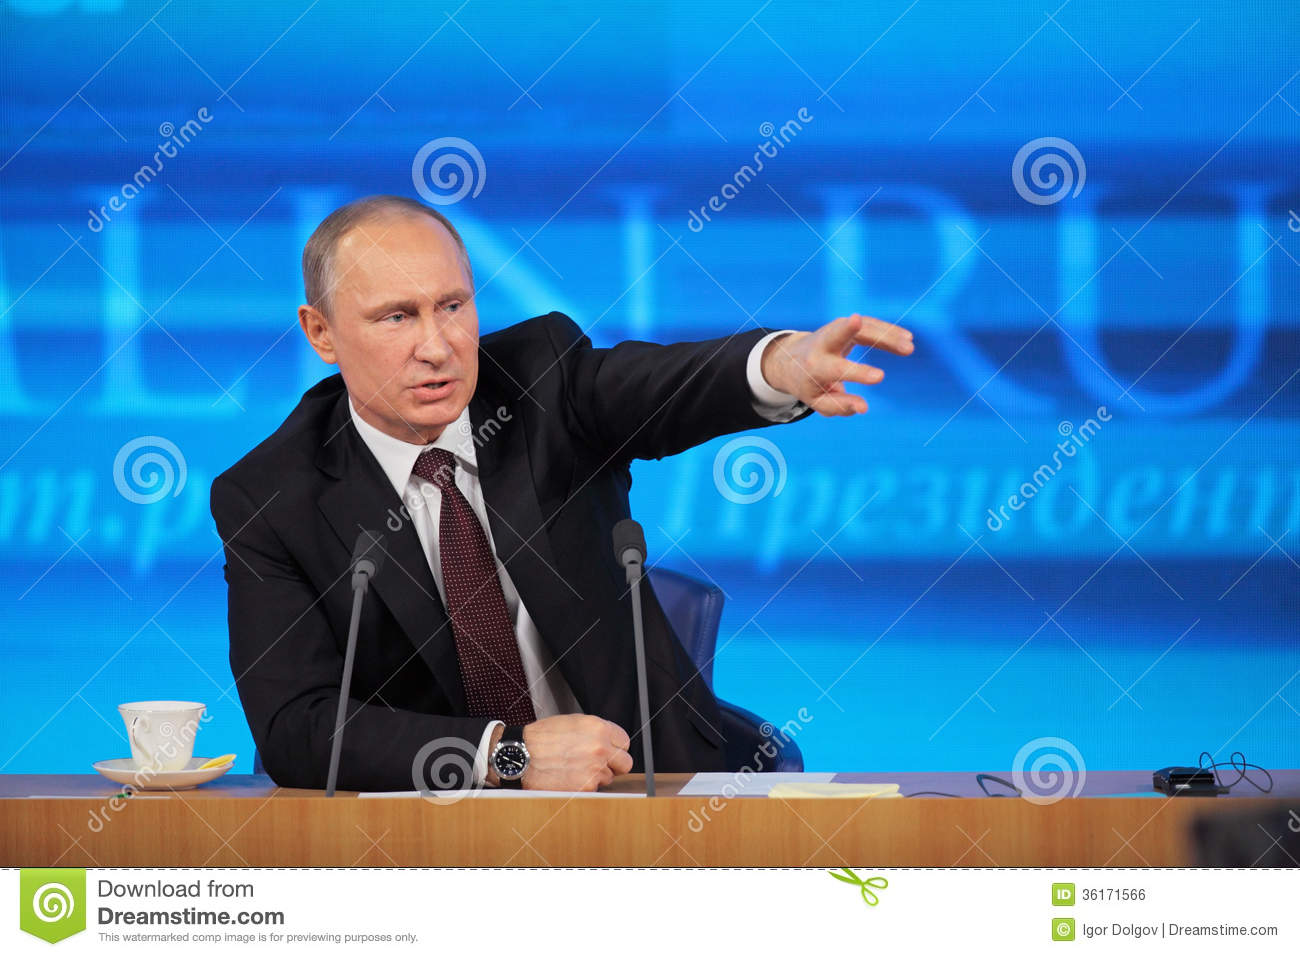 washington times putin dissertation In his final address to the united nations, president obama took swipes at russian president vladimir putin and - sep 20, 2016 by washington times.